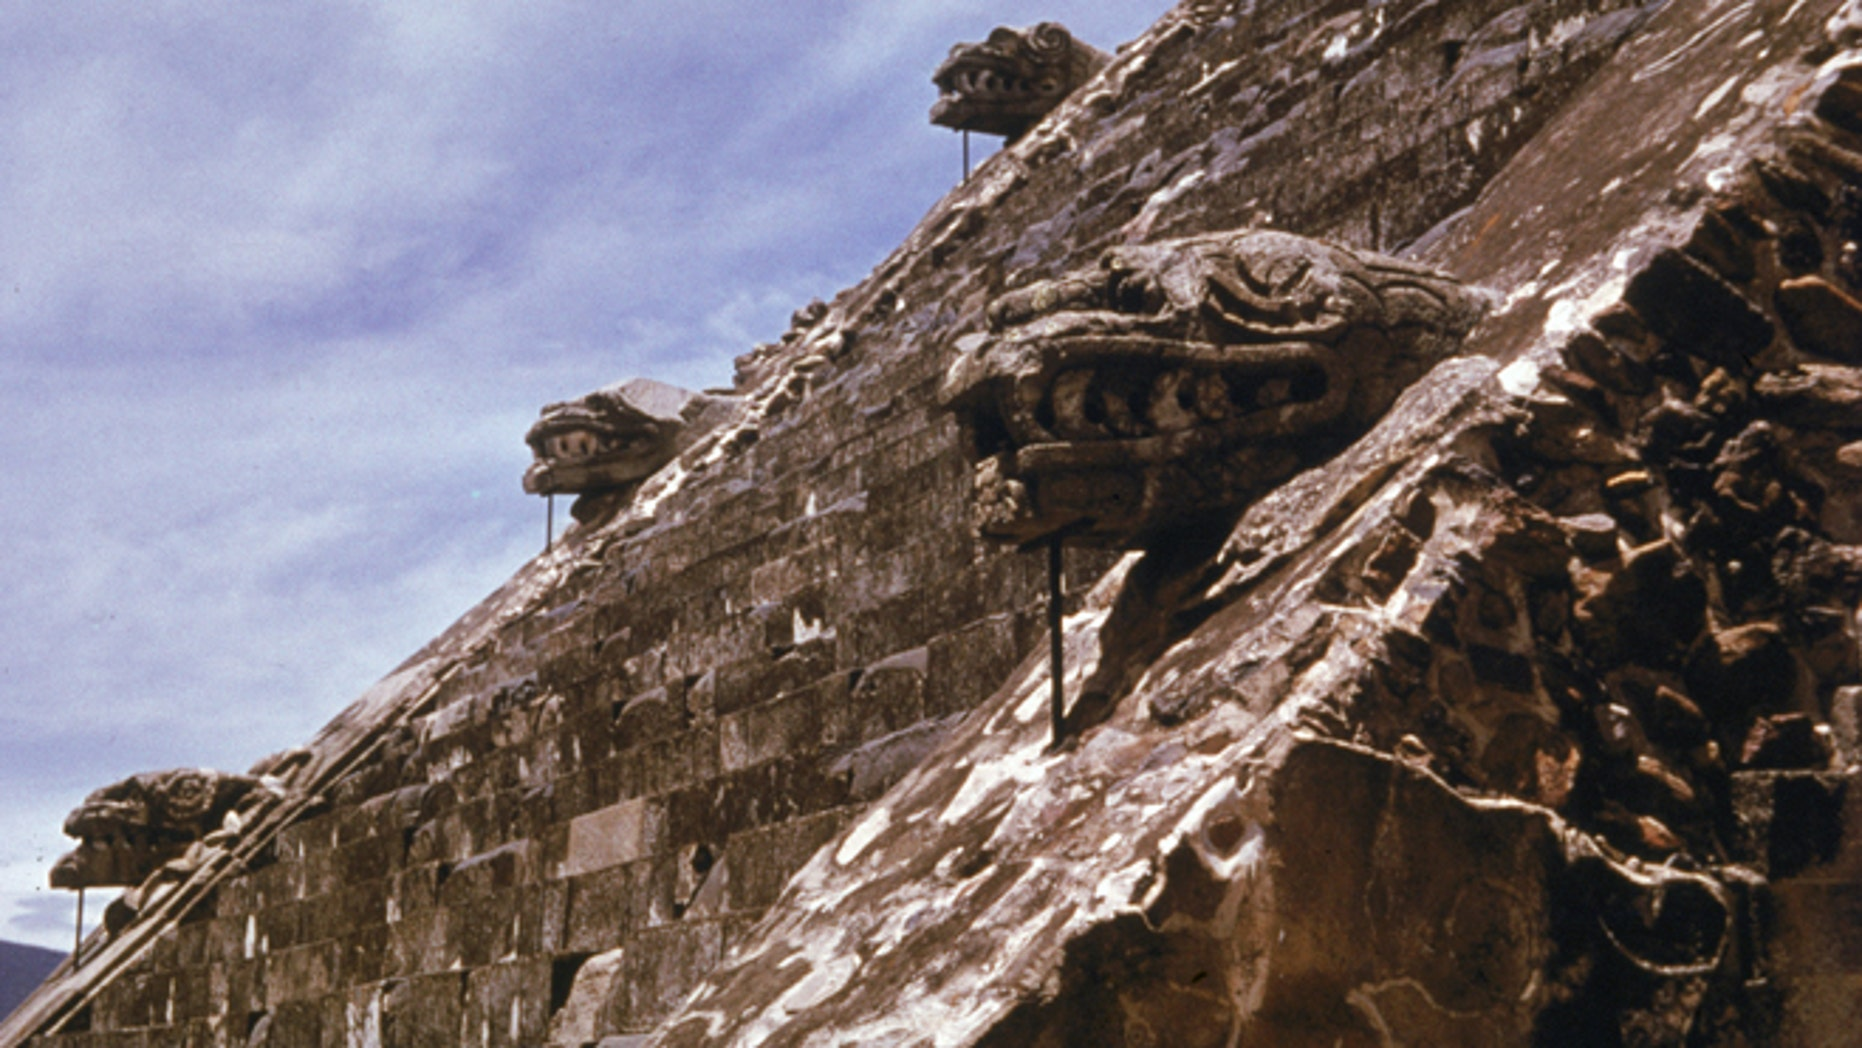 Detail of figures on the Temple of Quetzalcoatl at Teotihuacan, near Mexico City, Mexico, c. 1980.